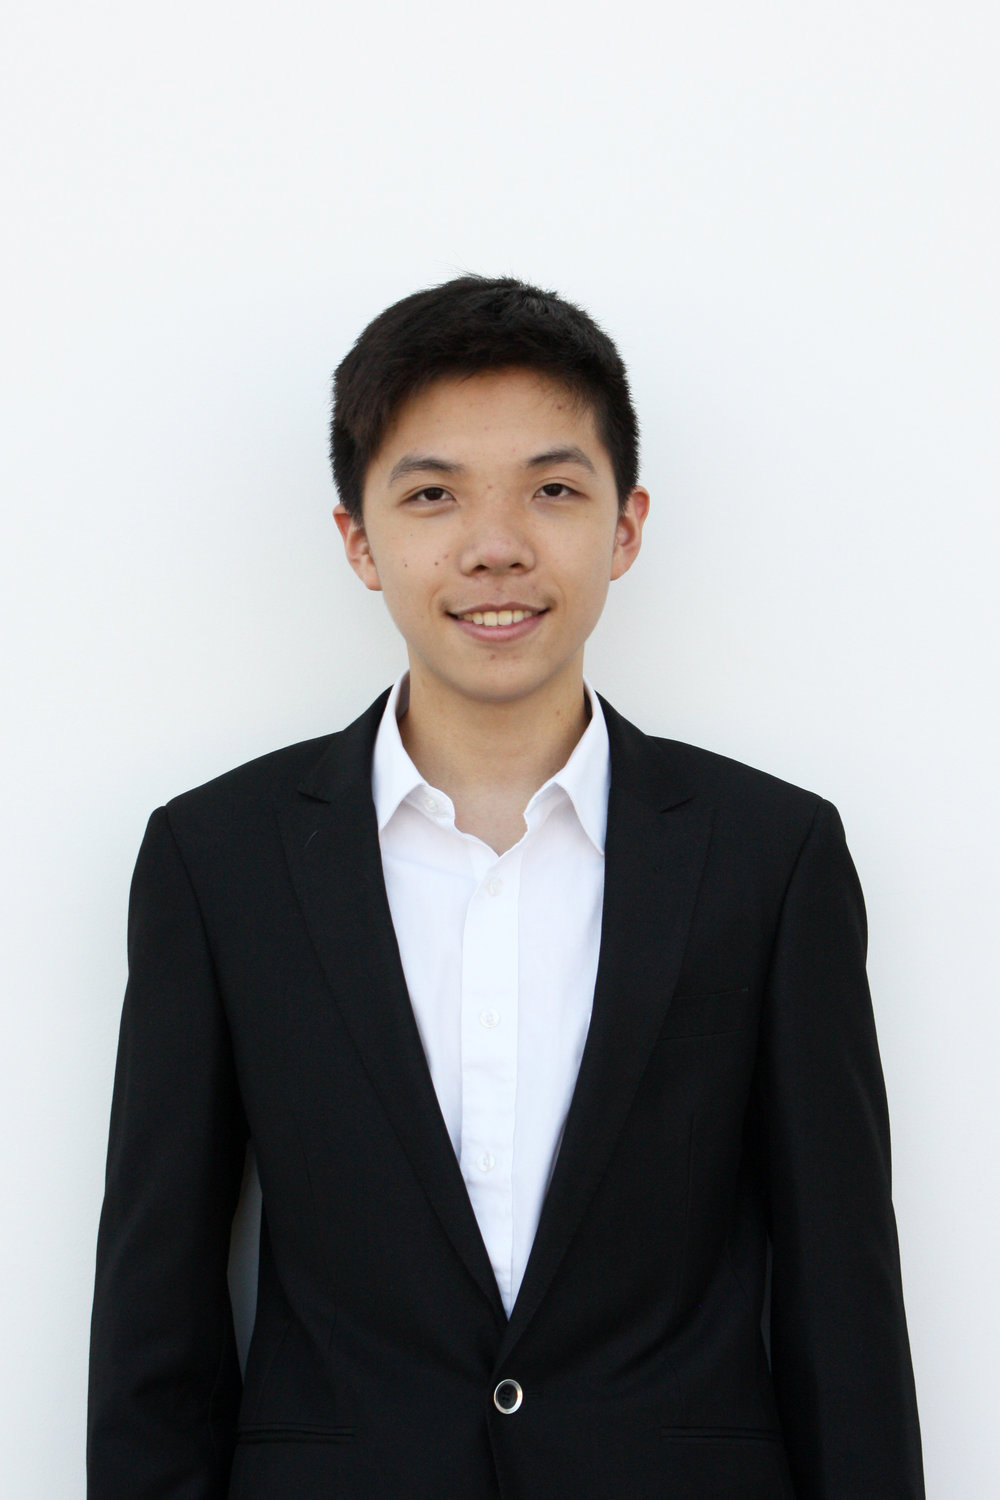 Korey Zhou Director of International Development Email: korey.zhou@cactesassociation.org